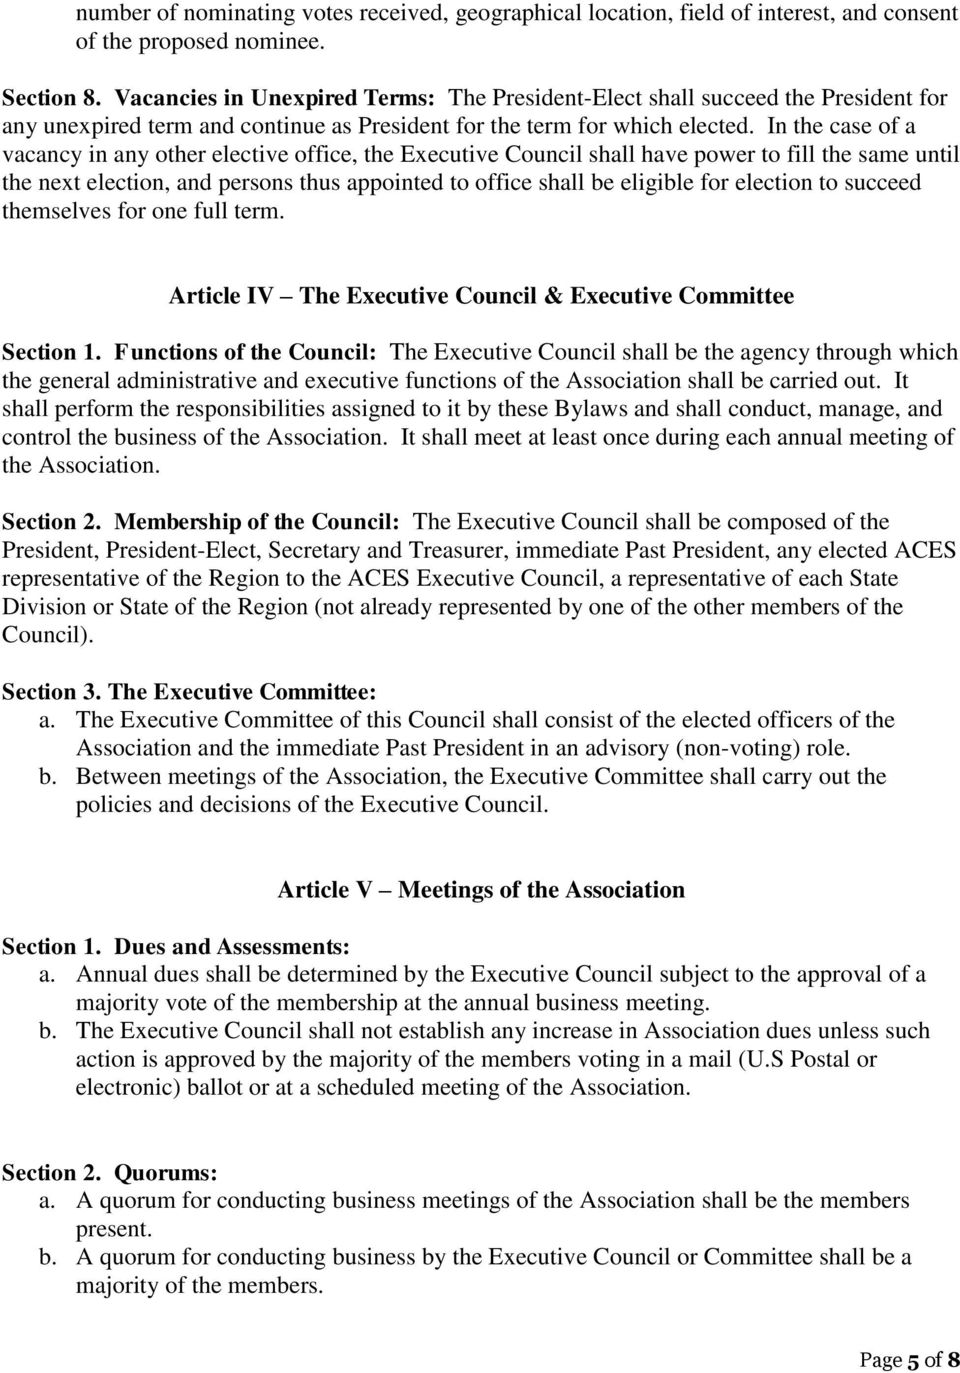 In the case of a vacancy in any other elective office, the Executive Council shall have power to fill the same until the next election, and persons thus appointed to office shall be eligible for